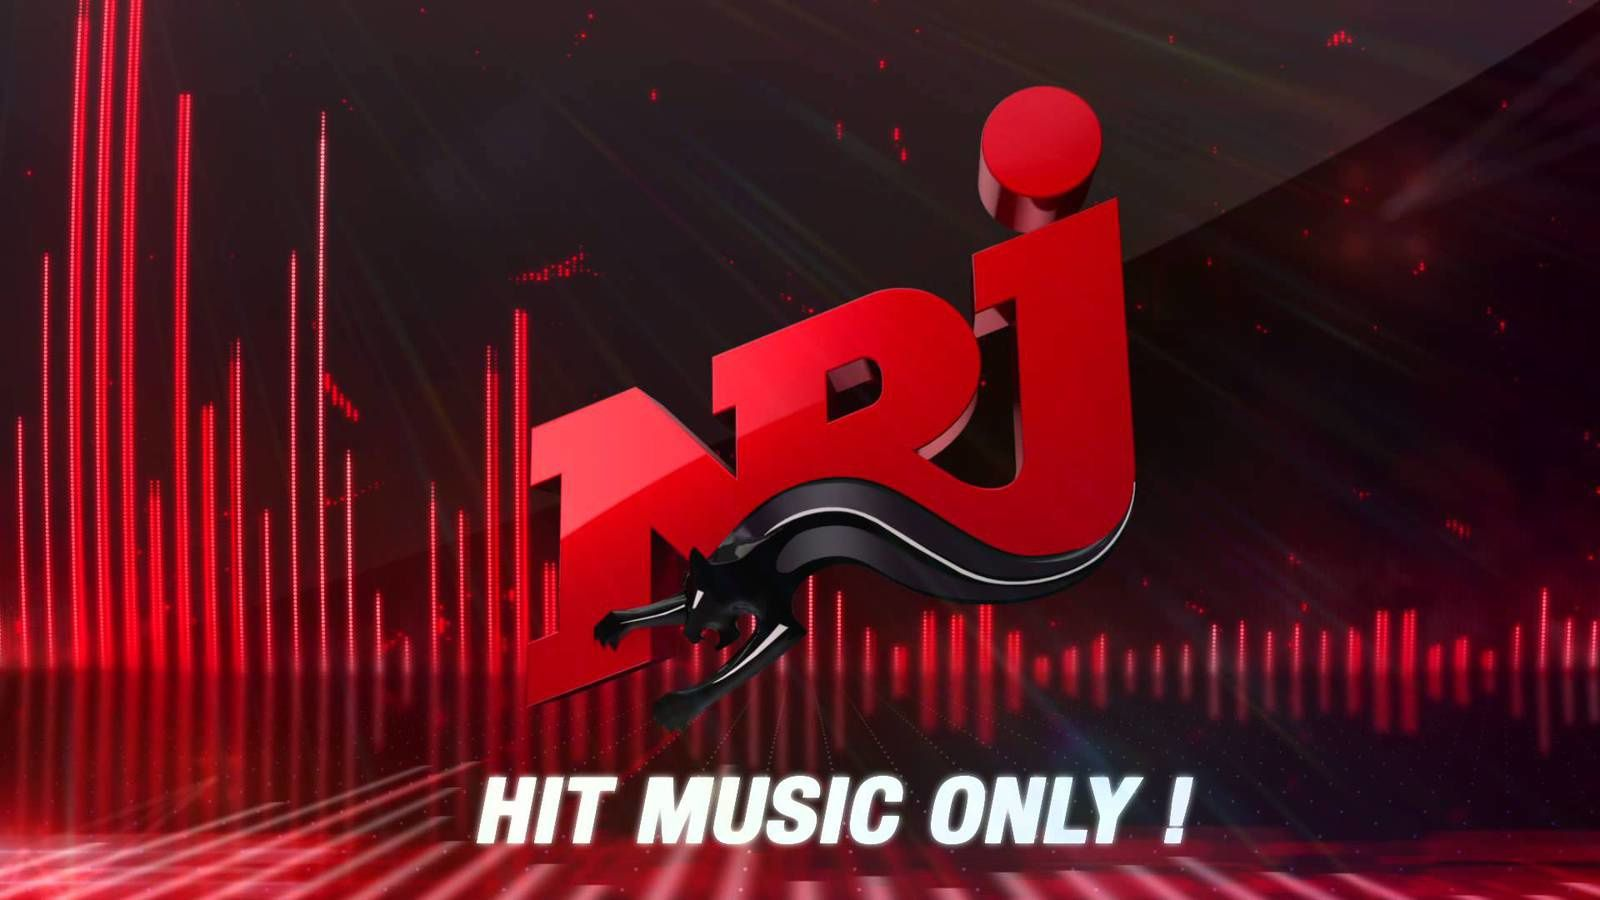 Audiences Radio : NRJ devant RTL, Europe 1 en forte baisse